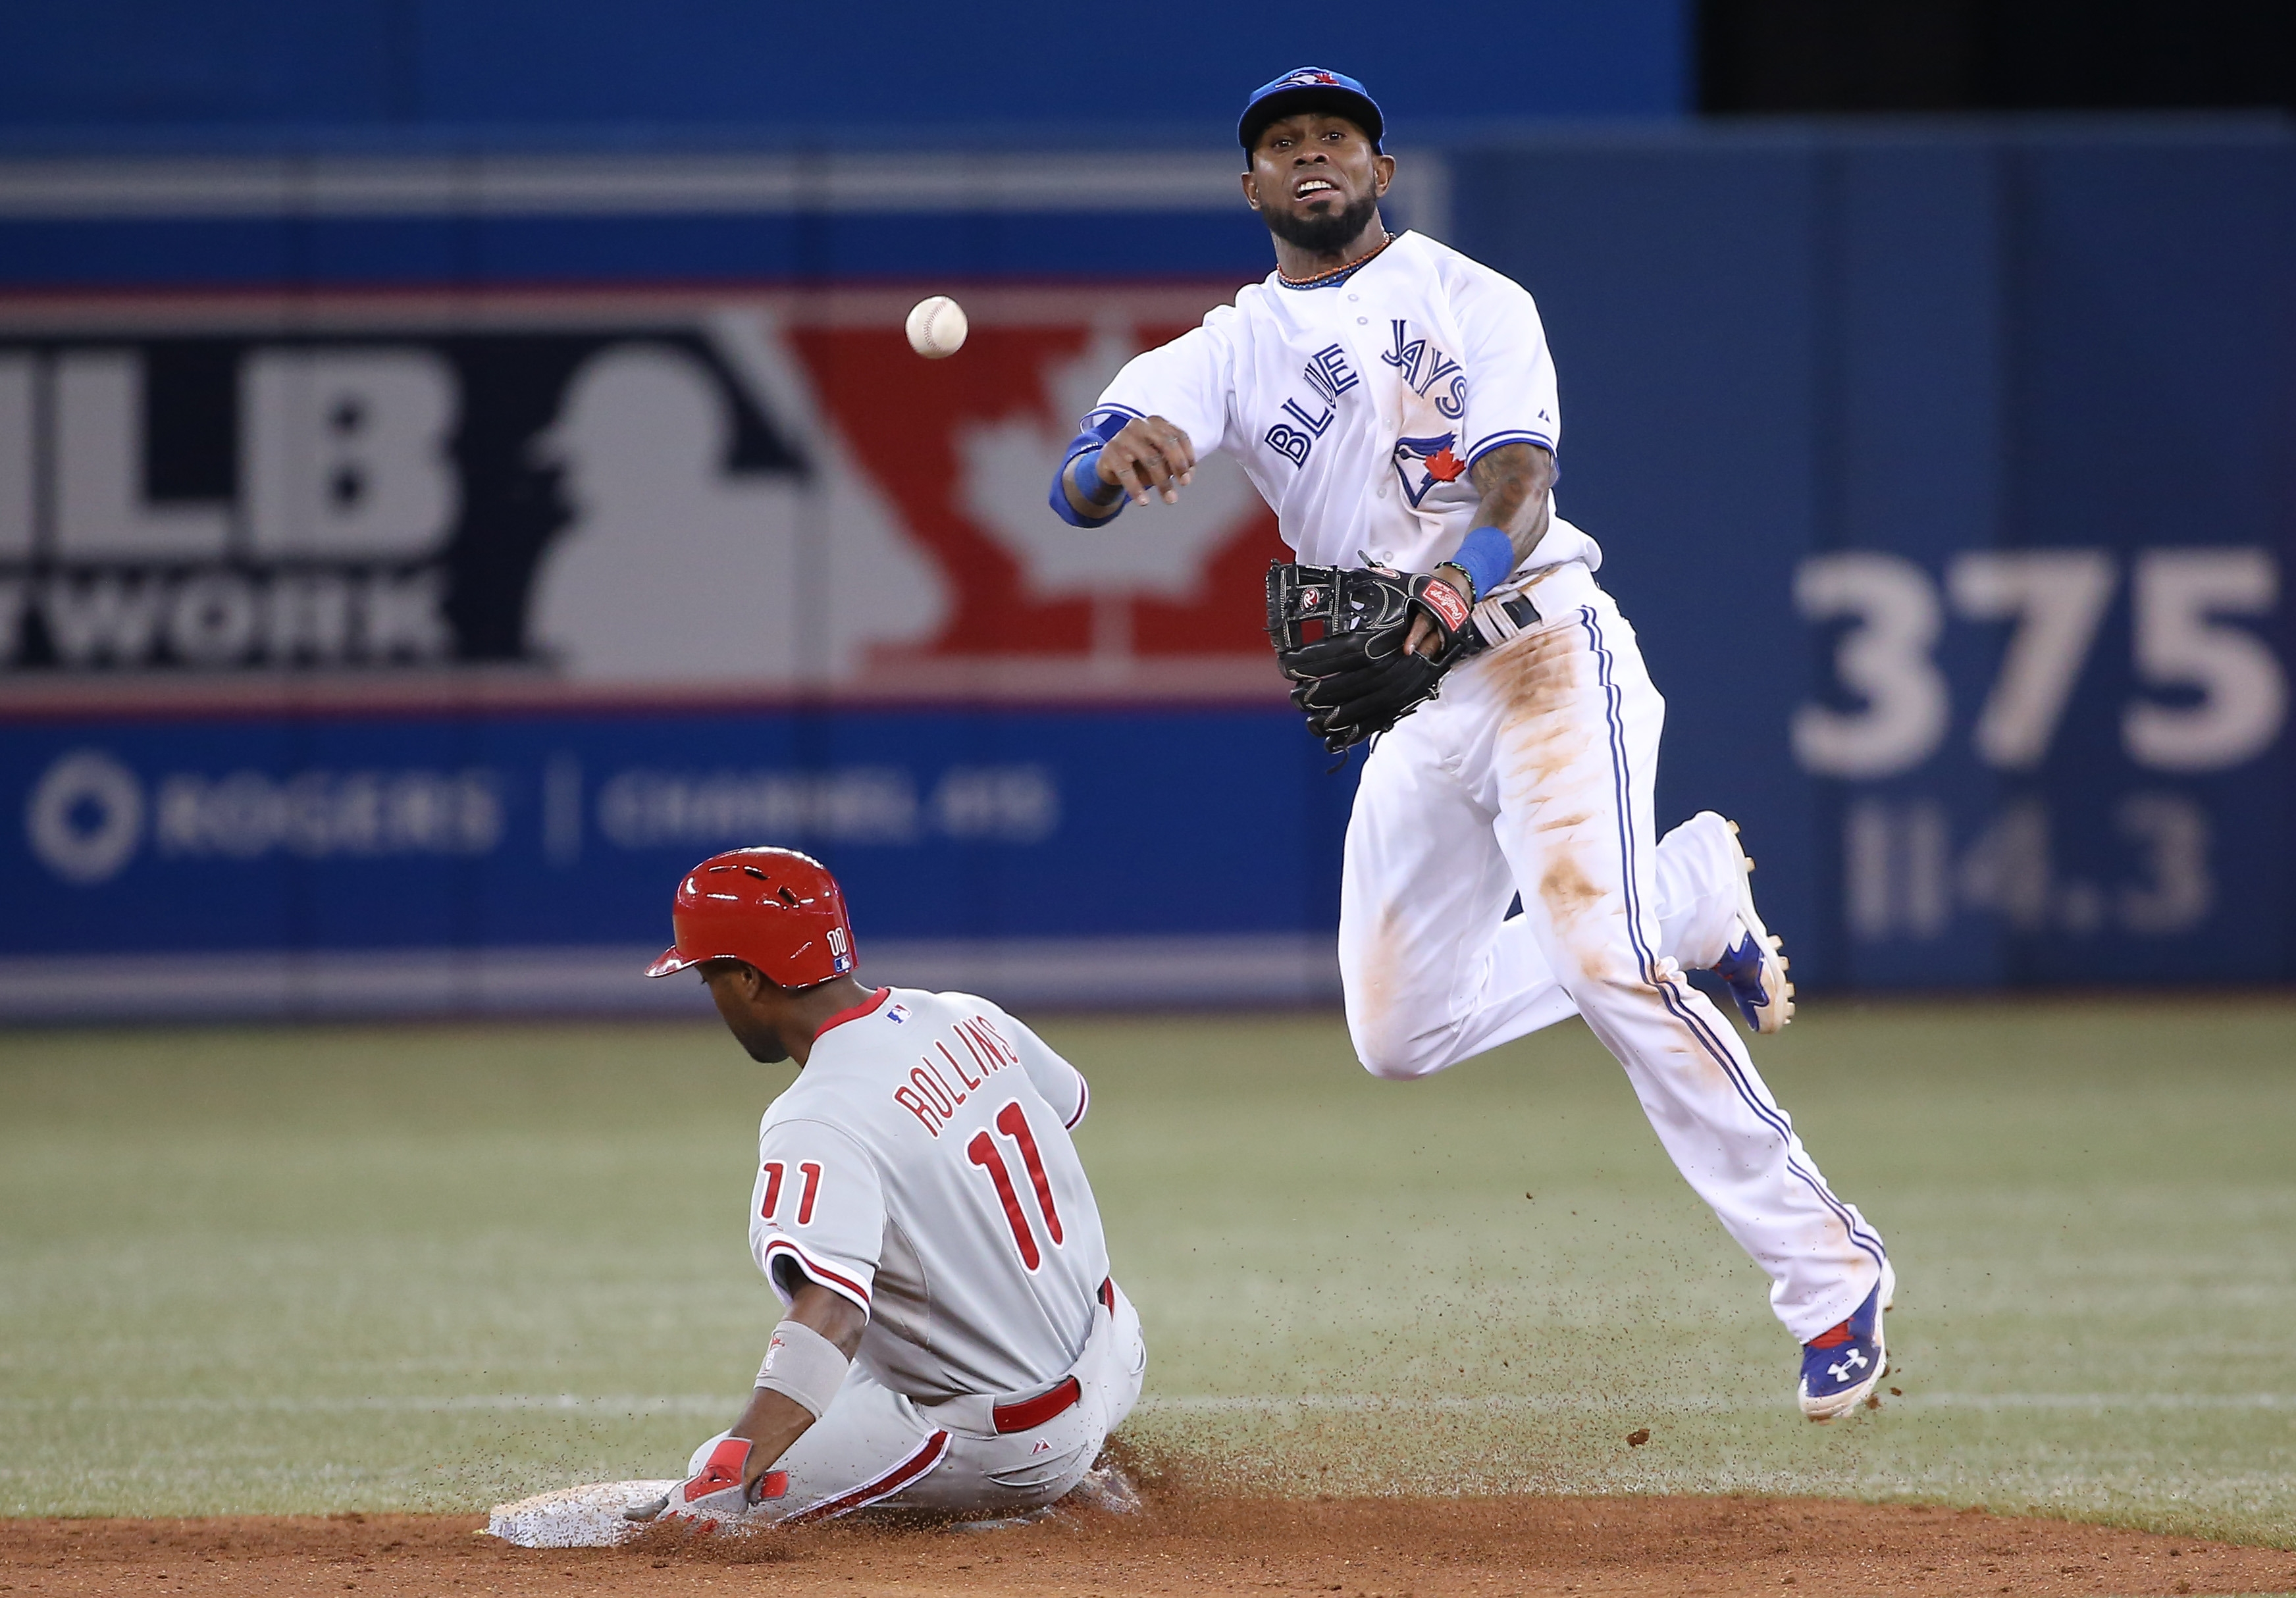 Having a healthy Jose Reyes will be key to the Toronto Blue Jays' chances of staying in contention.